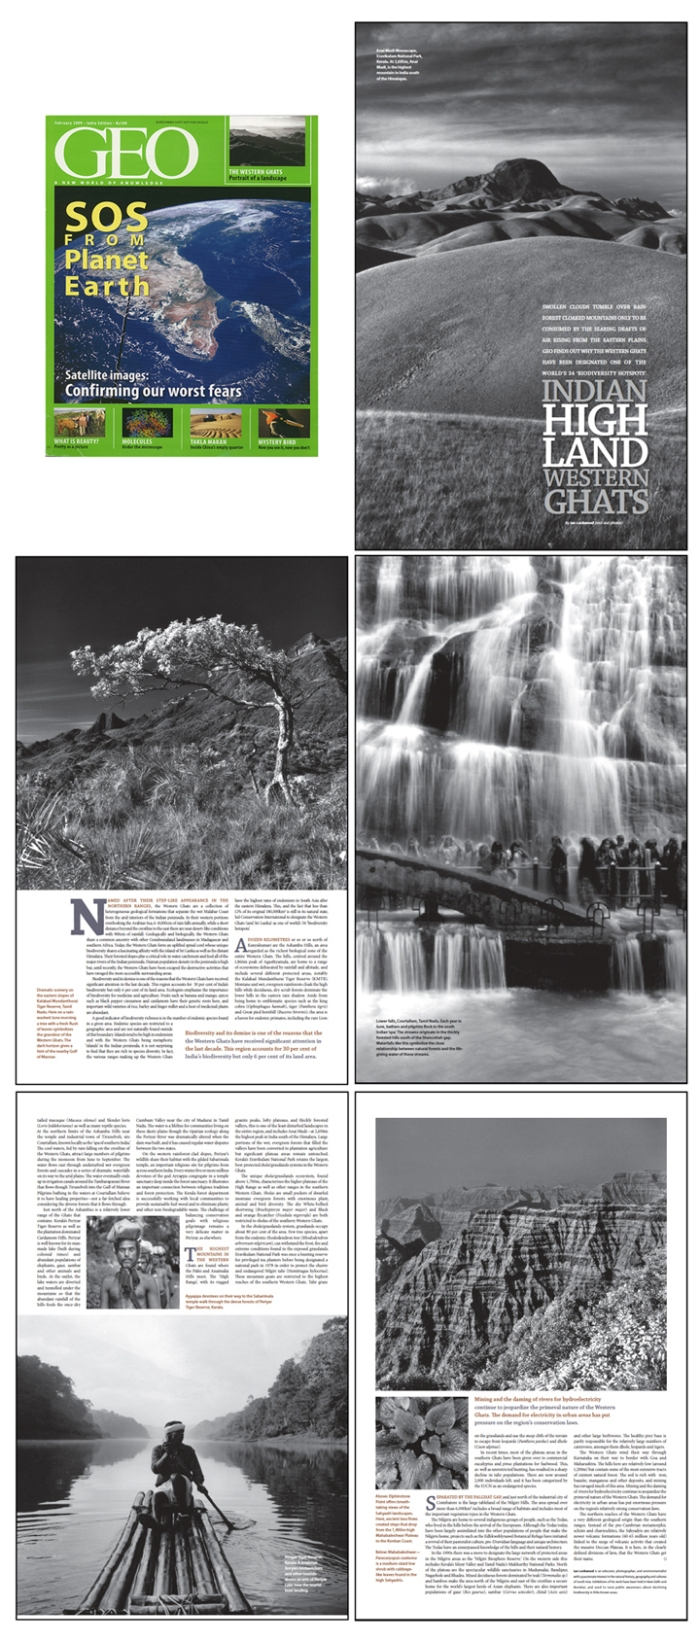 Main Western Ghats article (Geo, February 2009)